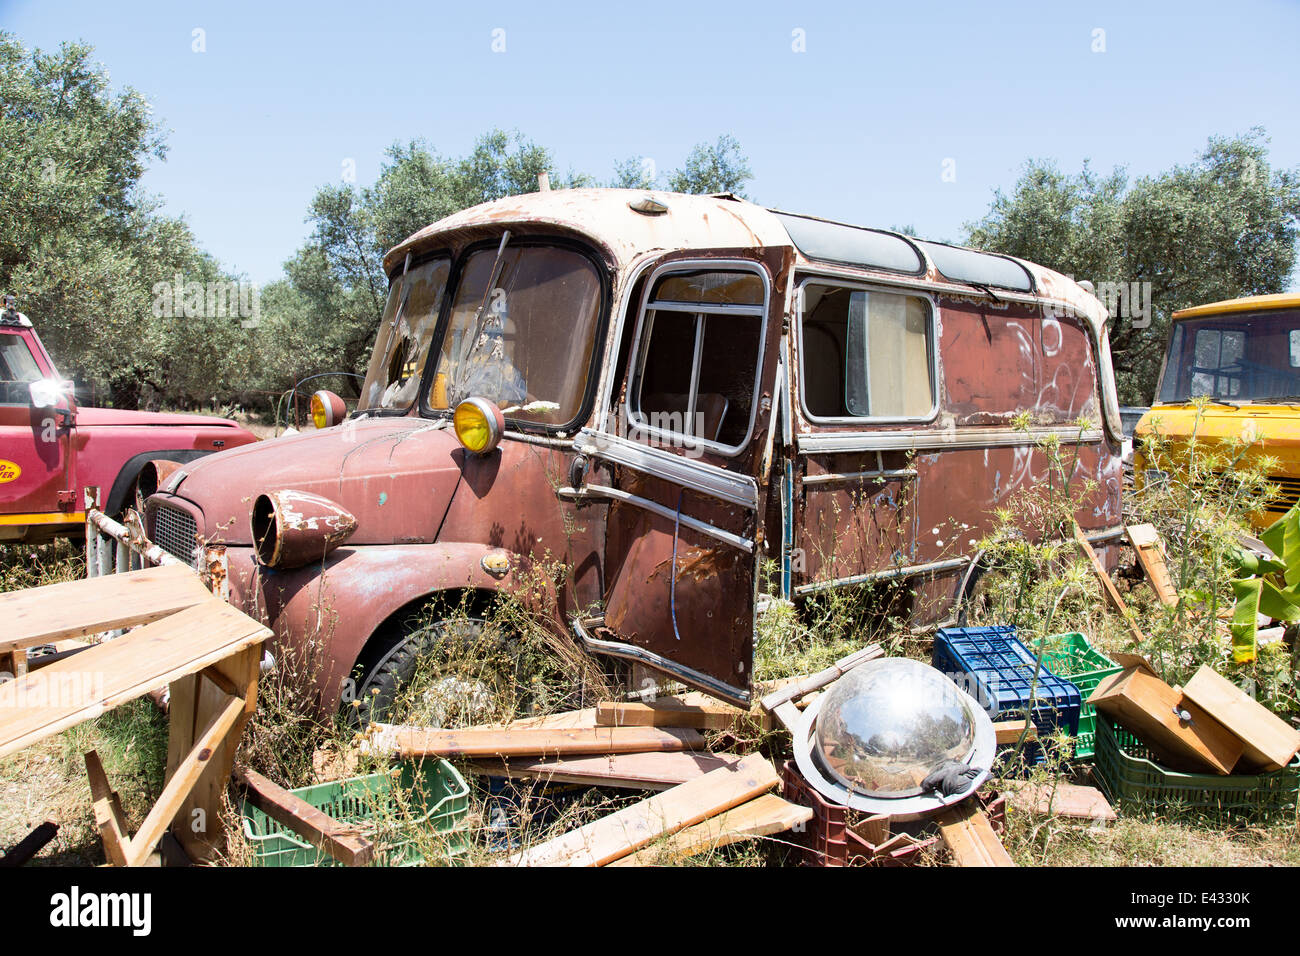 Scrapyard Car Stock Photos & Scrapyard Car Stock Images - Alamy